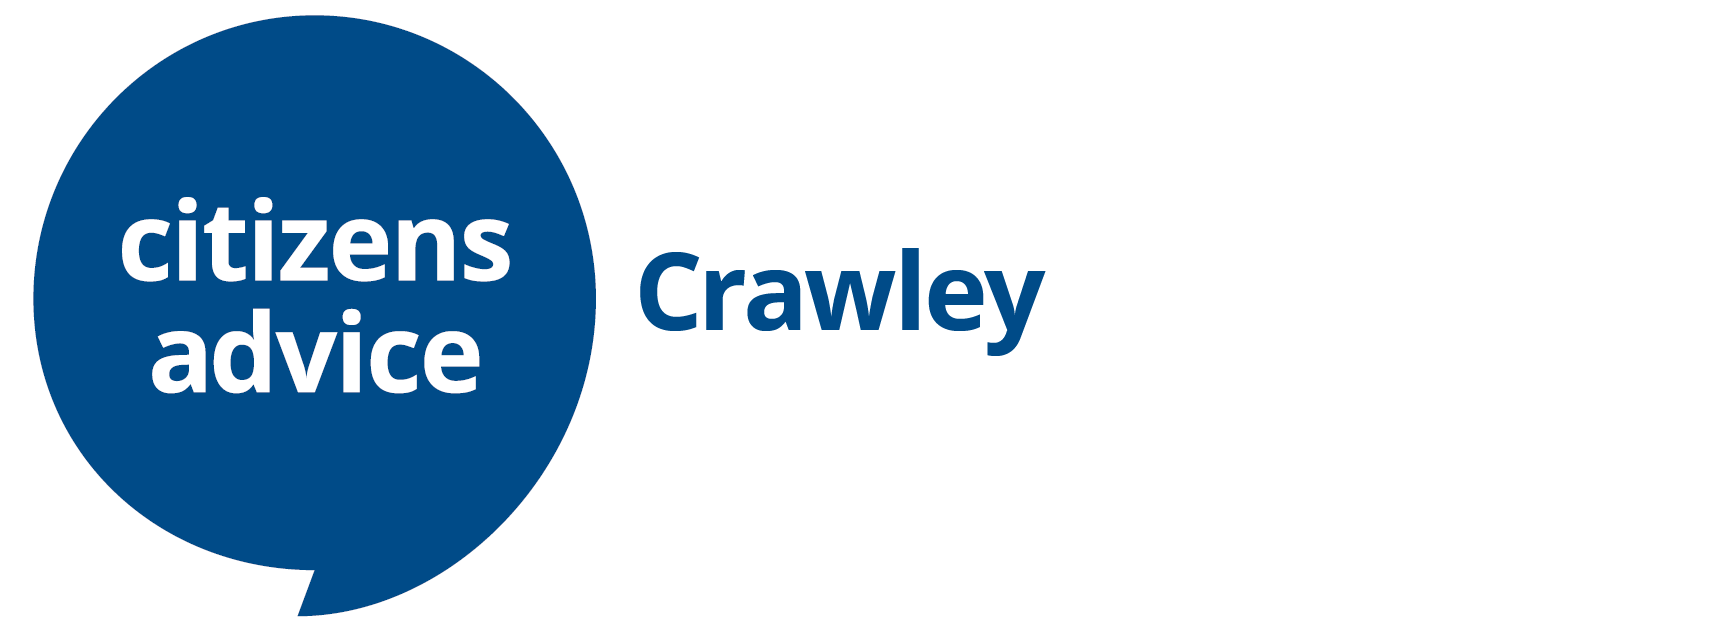 Crawley Connects – a new initiative to enable diverse groups and communities to access support more easily